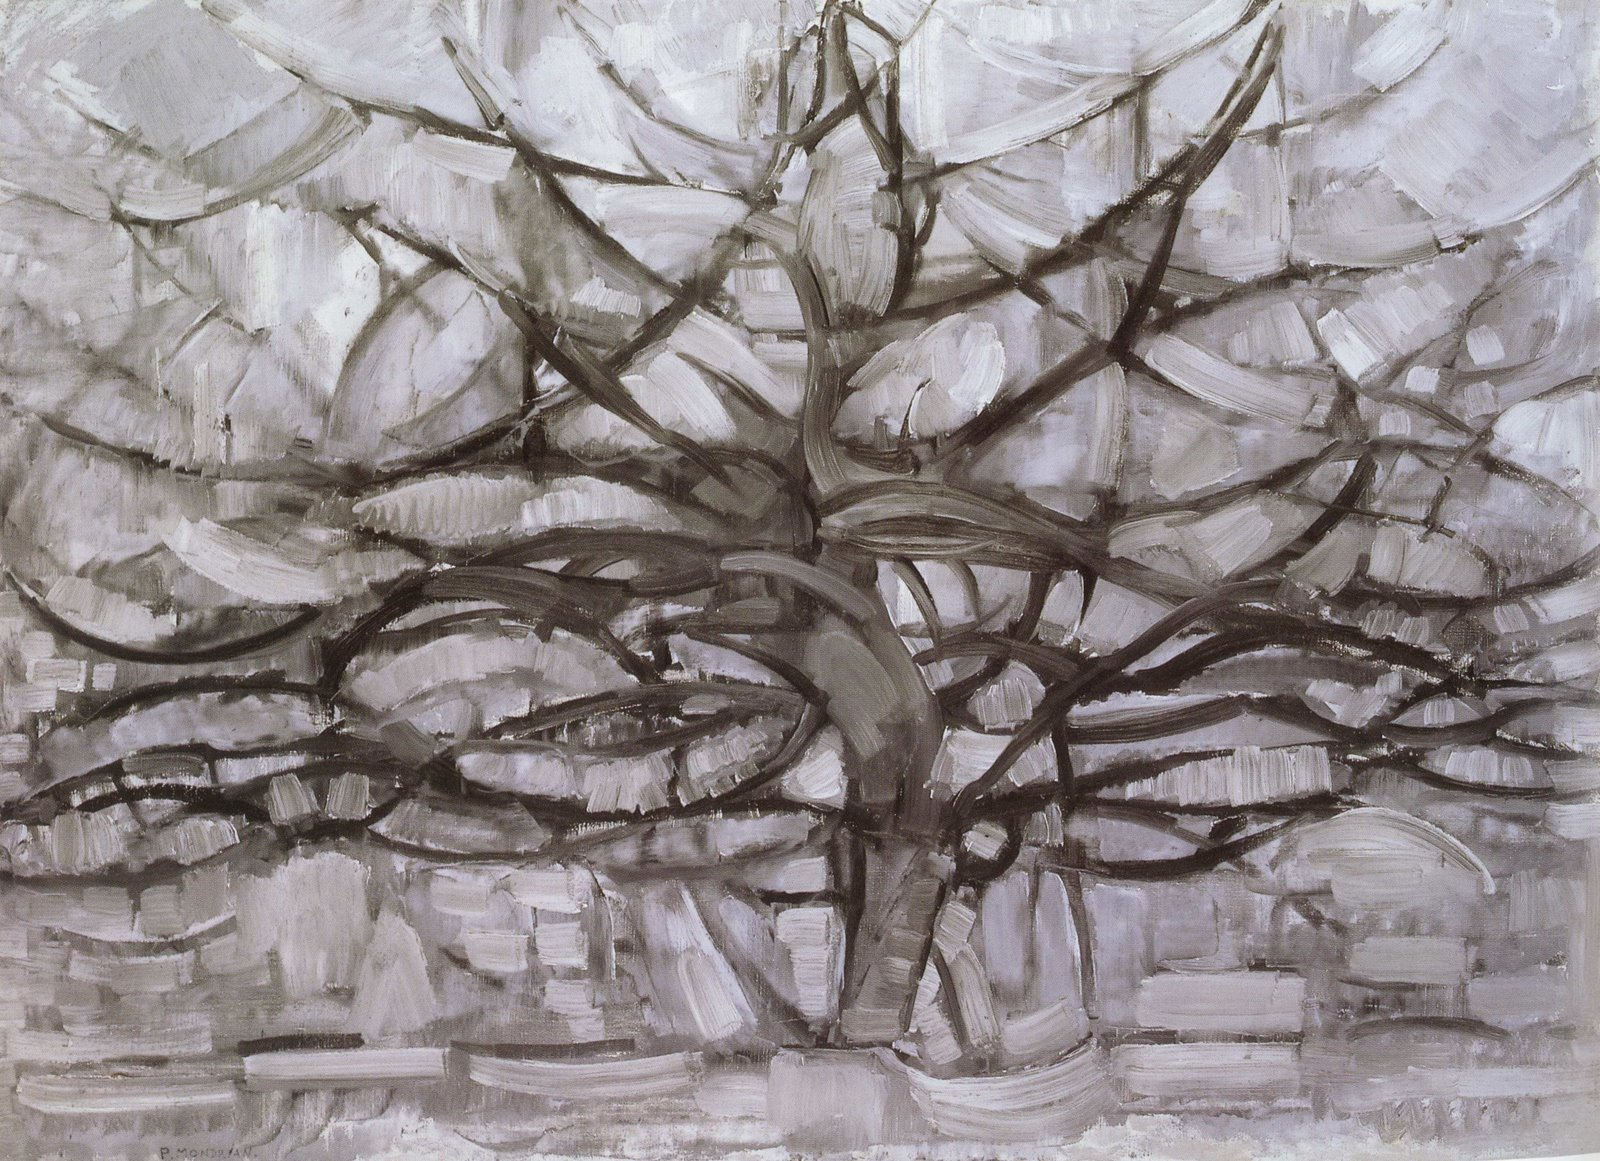 Piet Mondrian, The Grey Tree (1911, oil on canvas, 78.5 x 107.5 cm.) The Hague, Haags Gemeentemuseum.